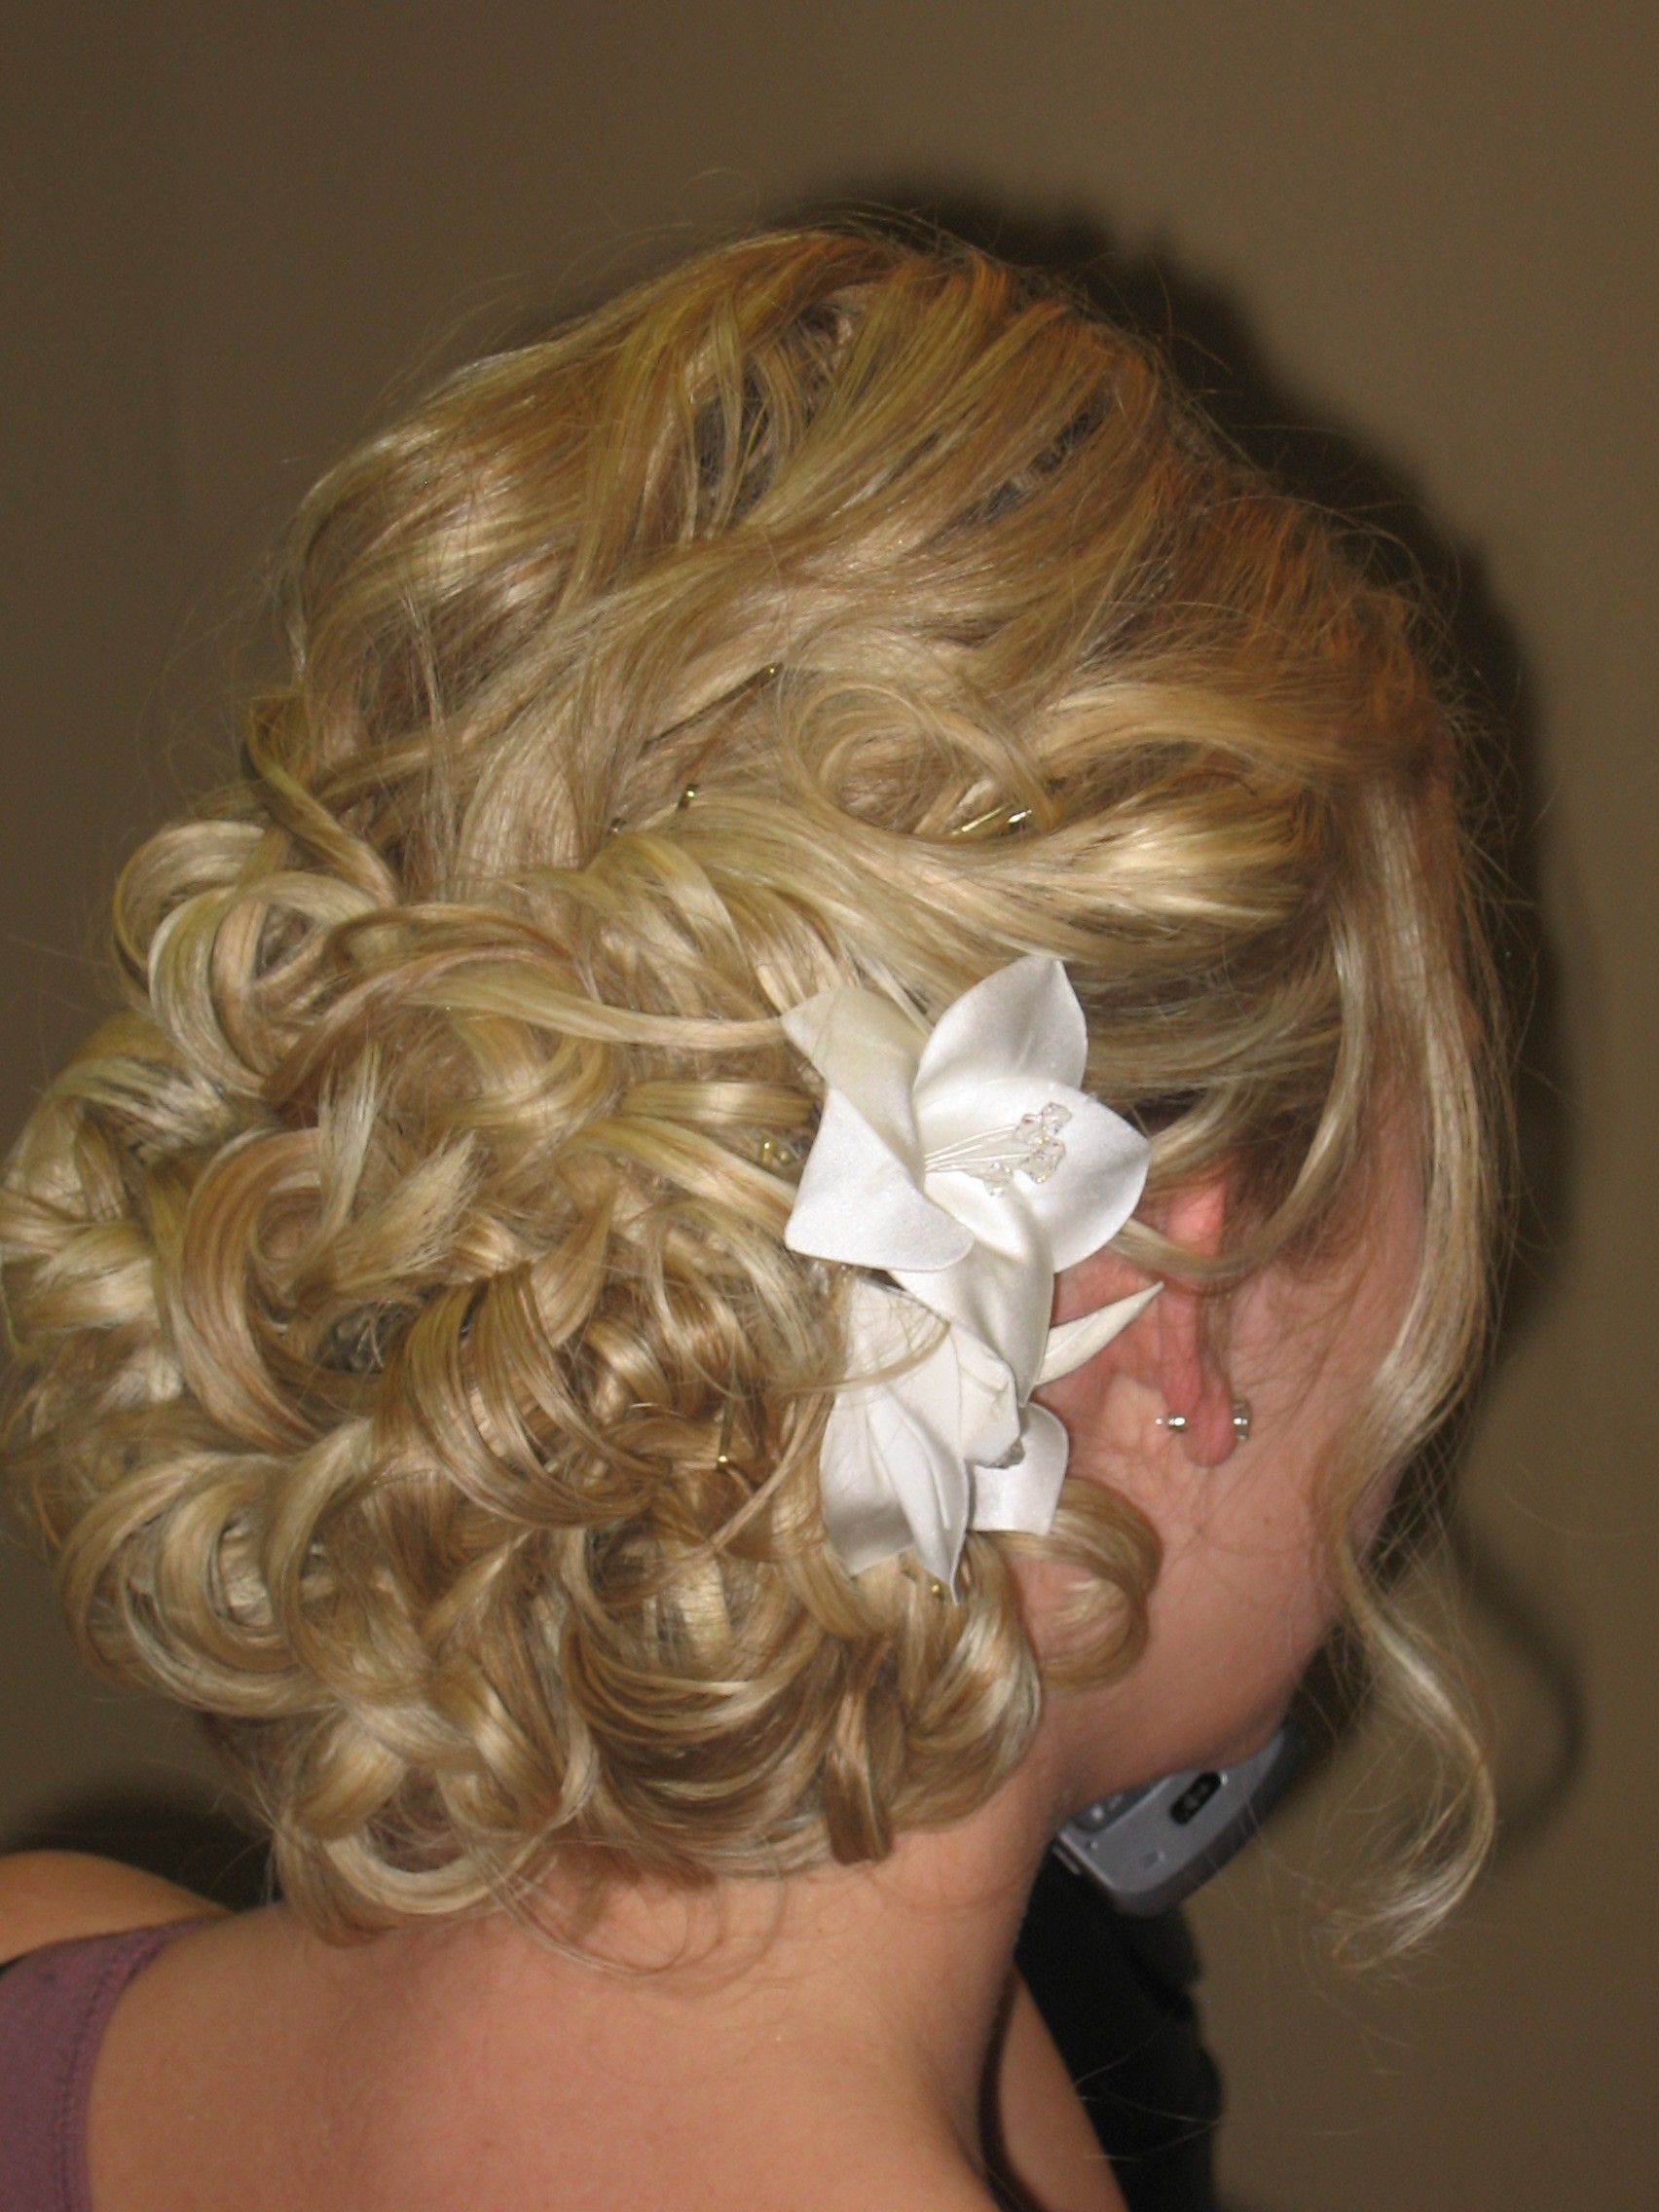 Beauty, Hair, Bridal, Michis hair design